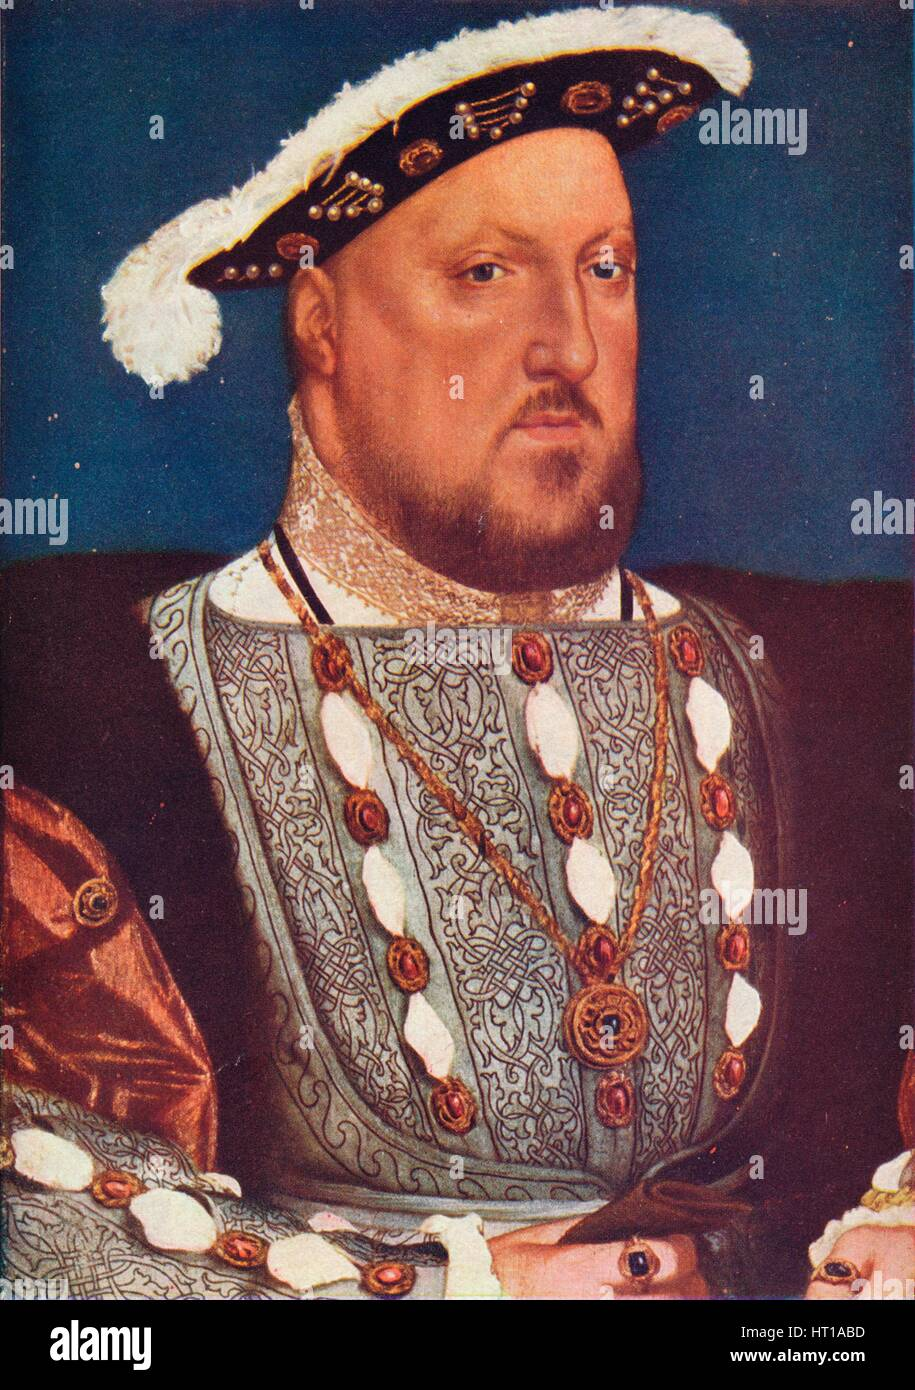 'King Henry VIII', c1537. Artist: Hans Holbein the Younger. - Stock Image